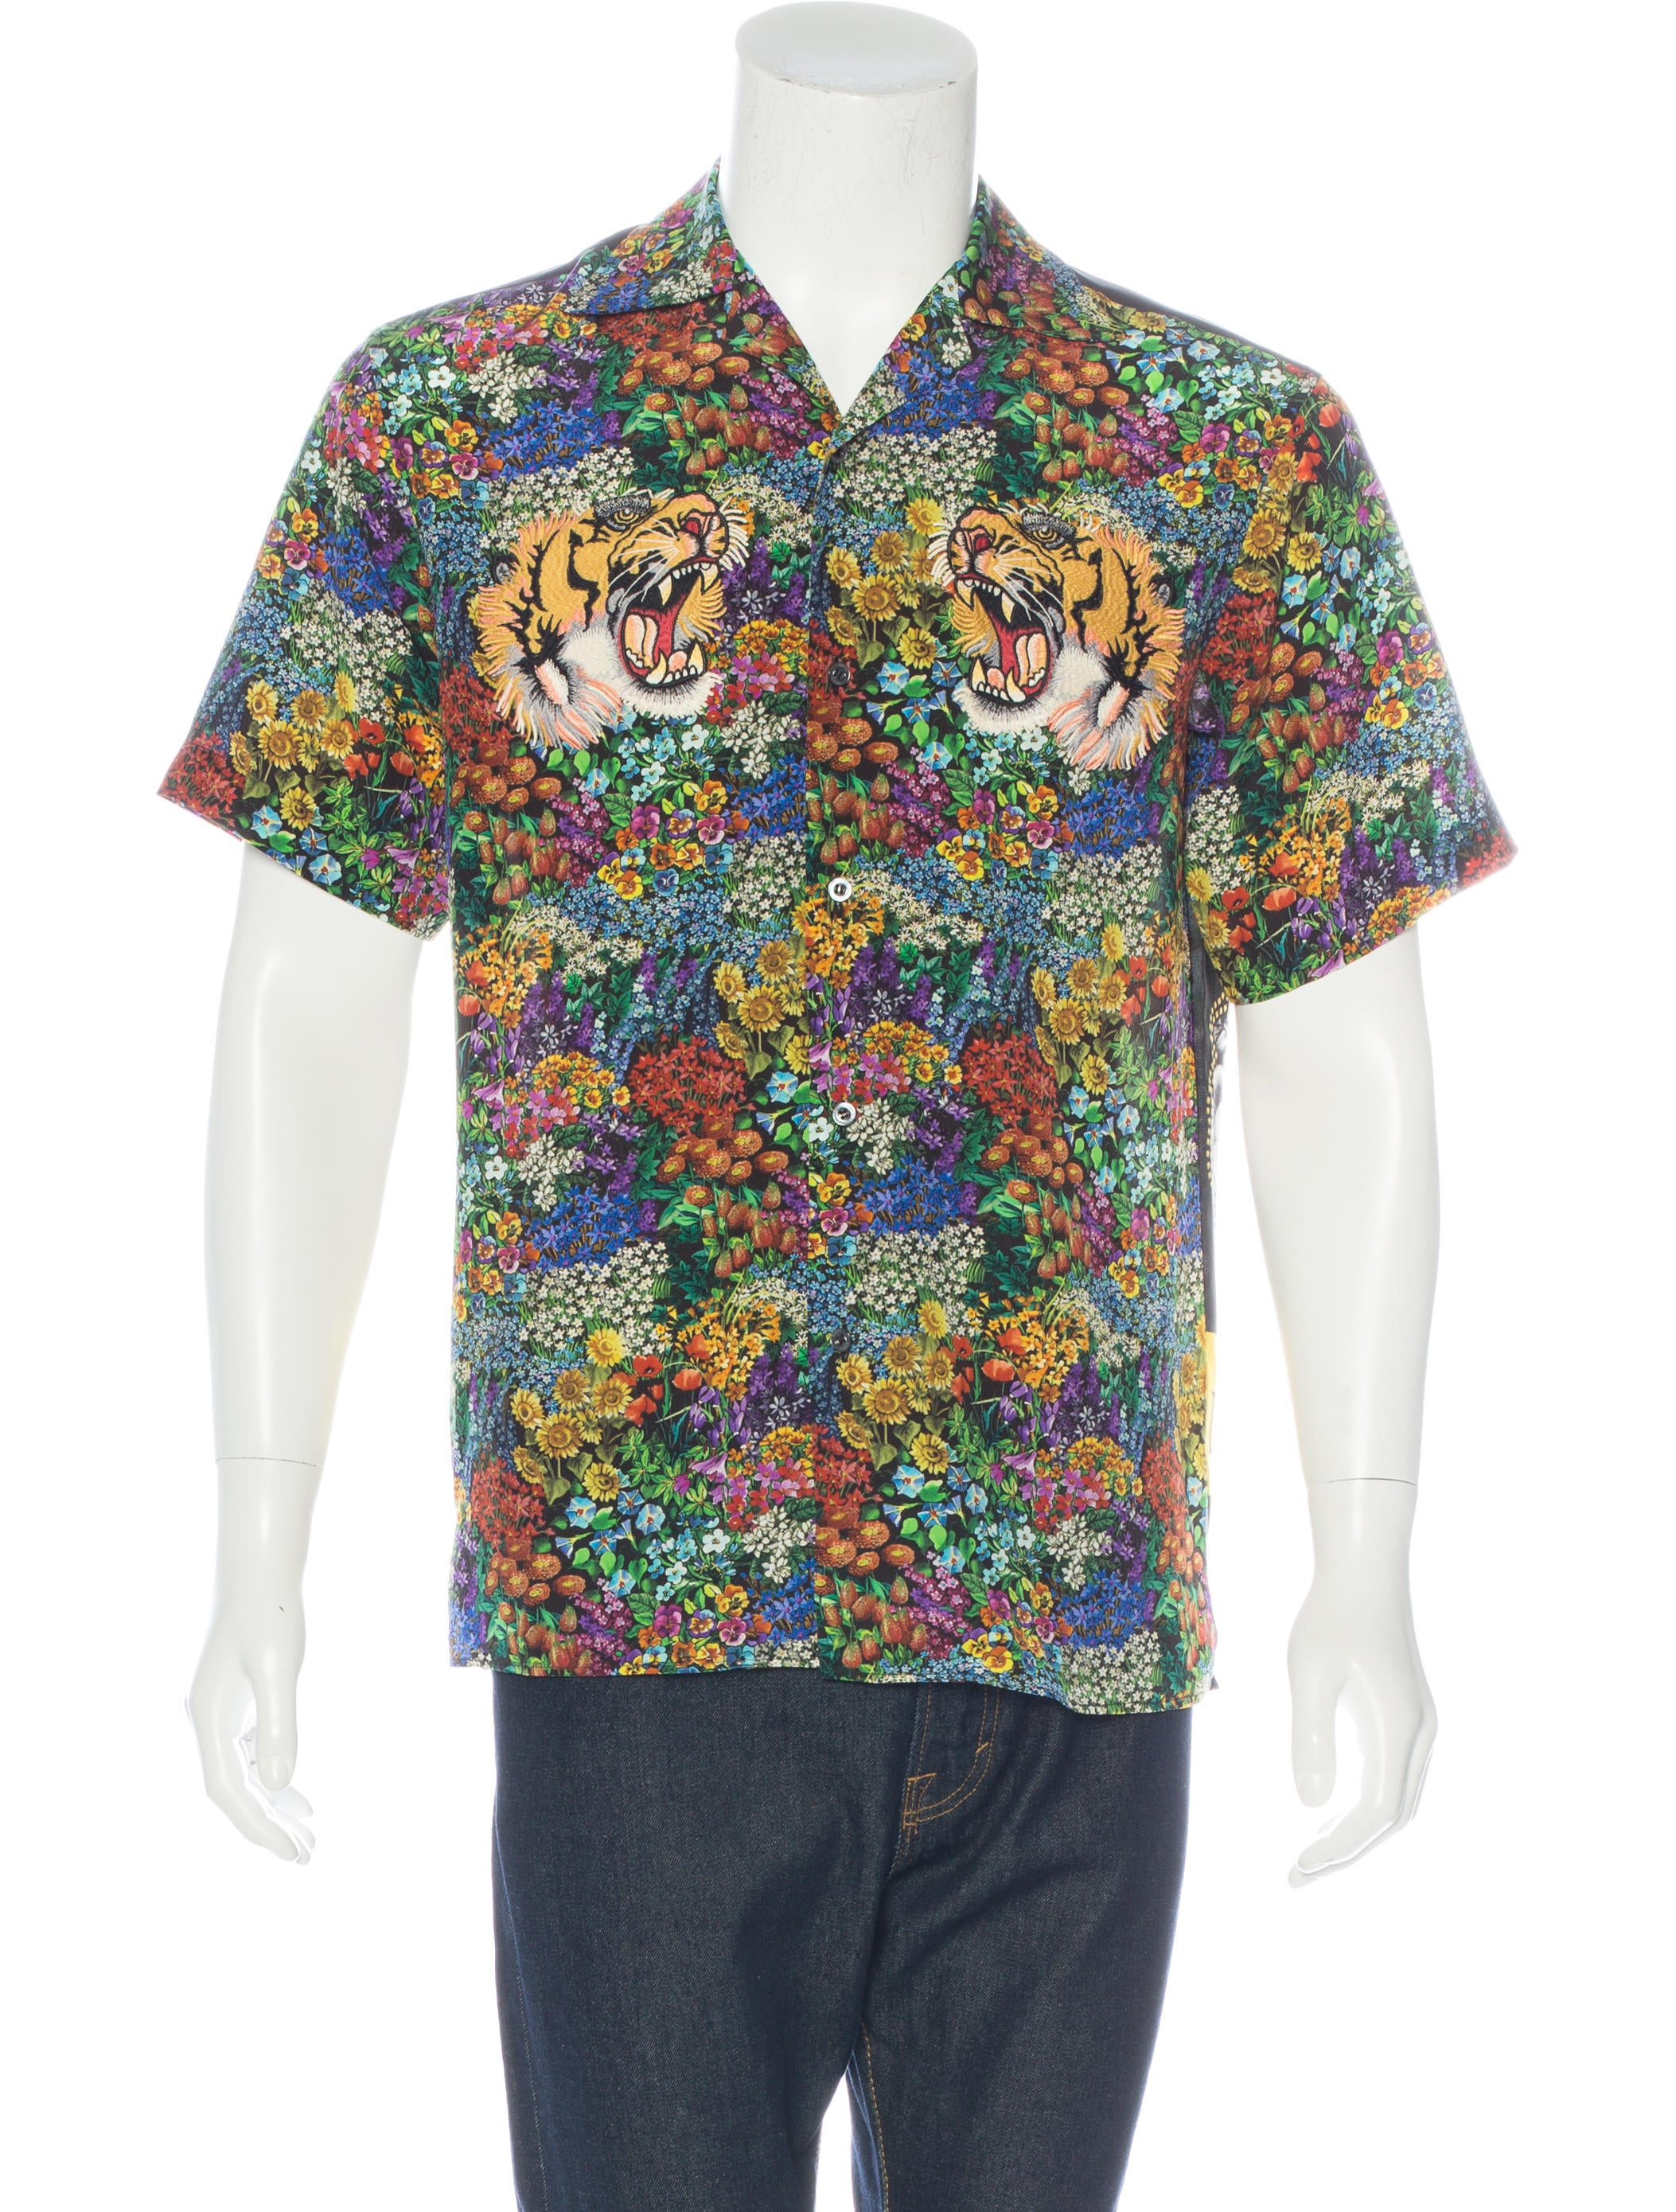 Bowling Shirts For Women